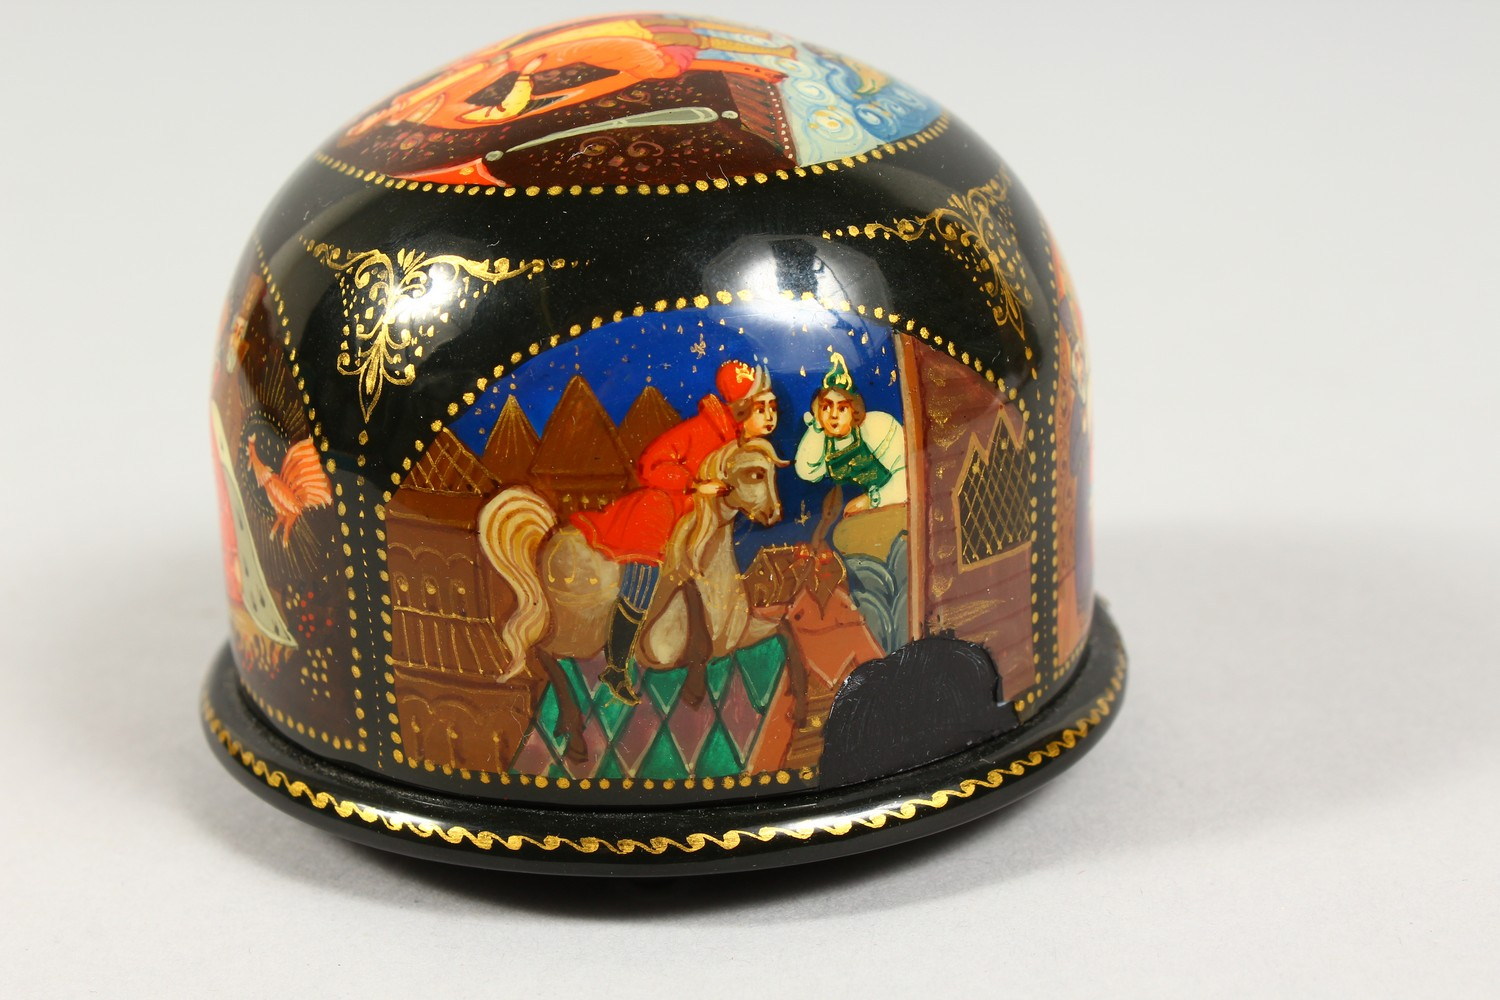 TWO SMALL RUSSIAN CIRCULAR BLACK PAPIER MACHE BOXES AND COVERS. 2.5ins diameter. - Image 10 of 12